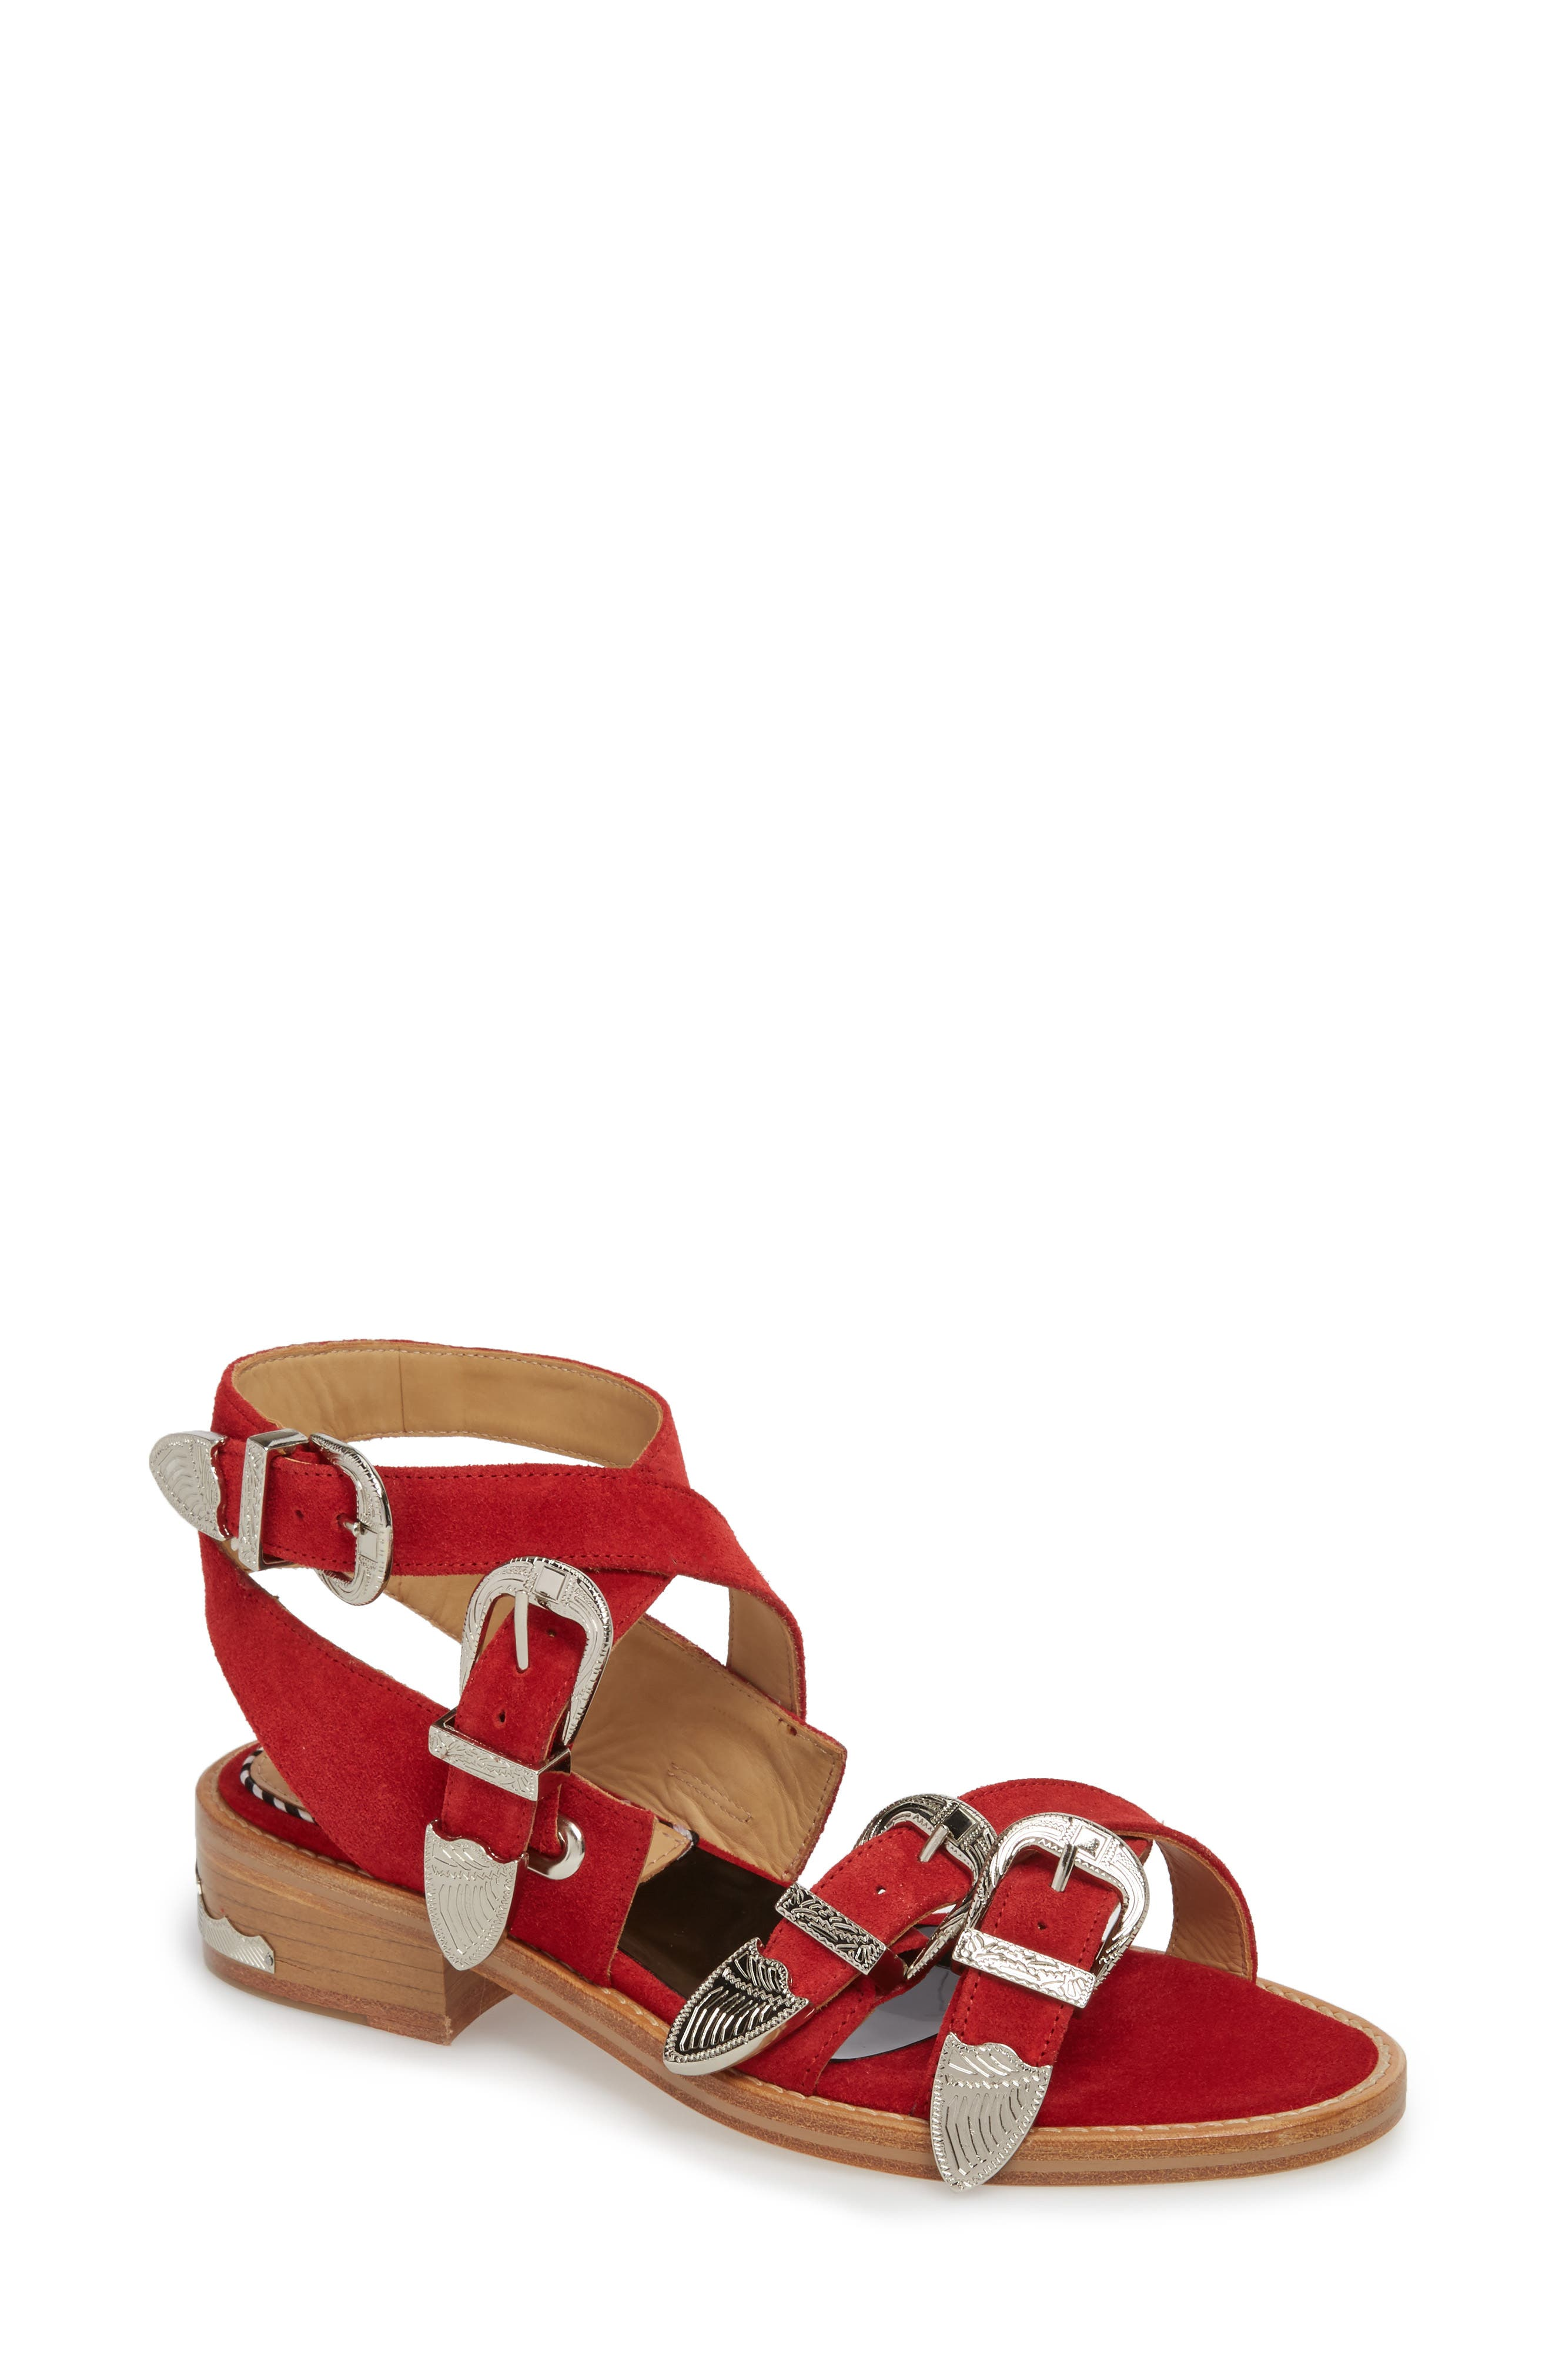 Western Suede Strappy Sandal,                             Main thumbnail 1, color,                             600